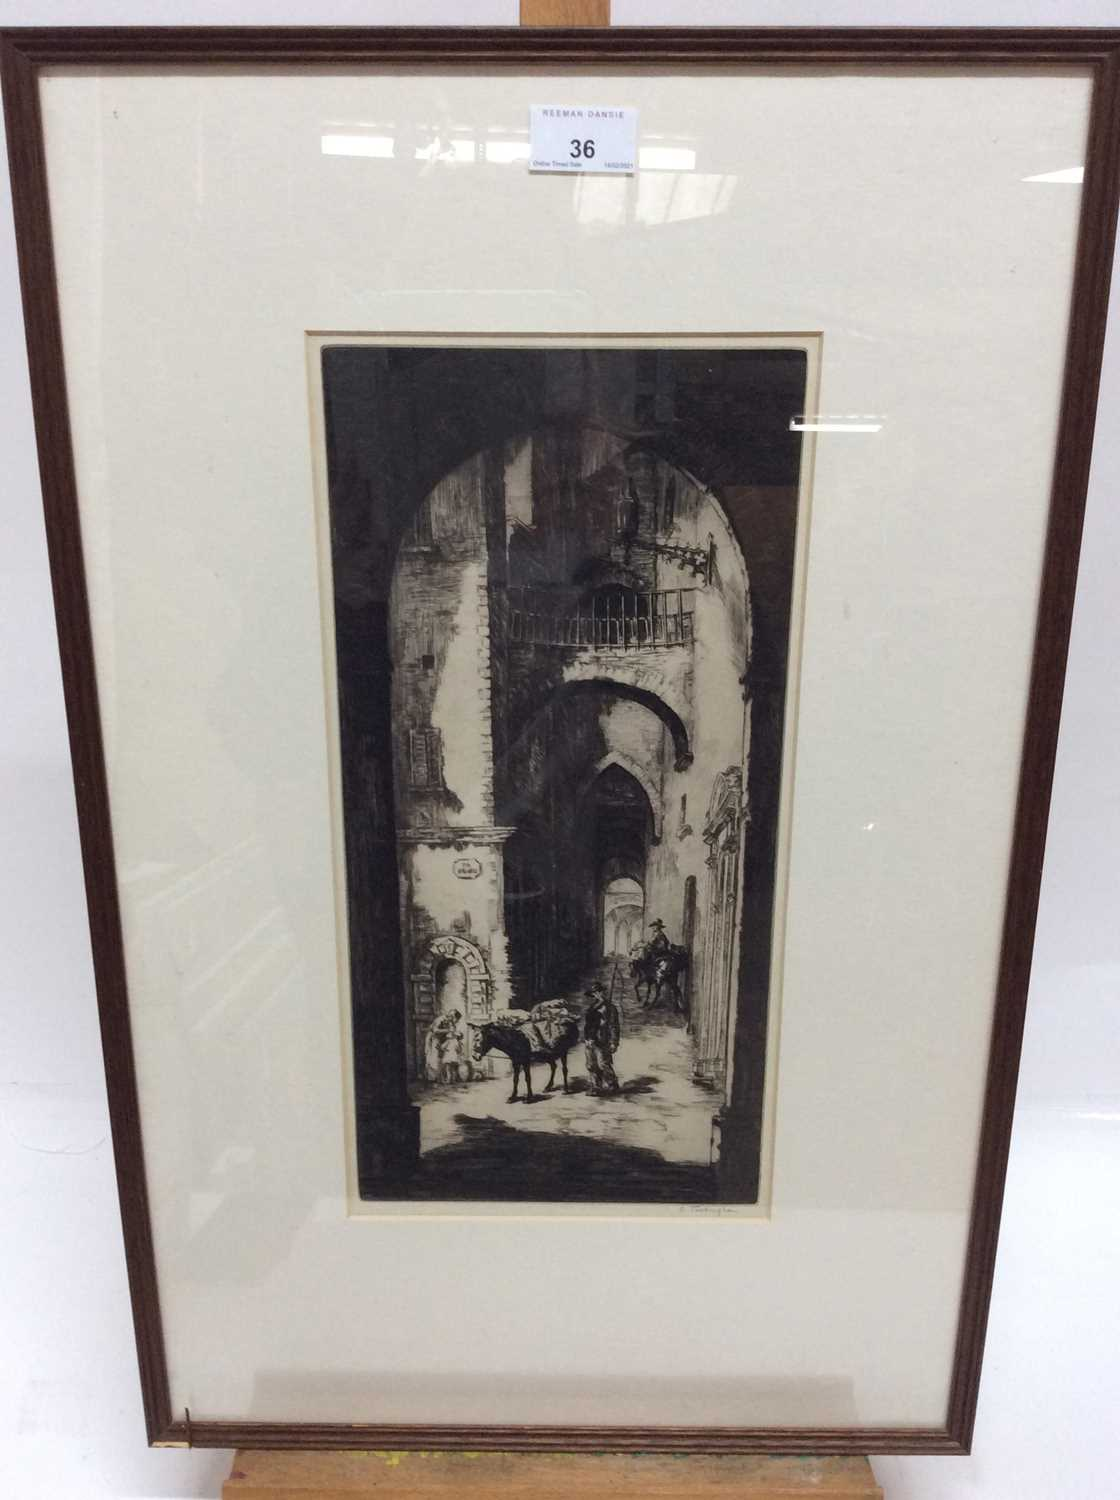 Sidney Tushingham (1884-1968) signed black and white etching - Continental Street, in glazed frame,